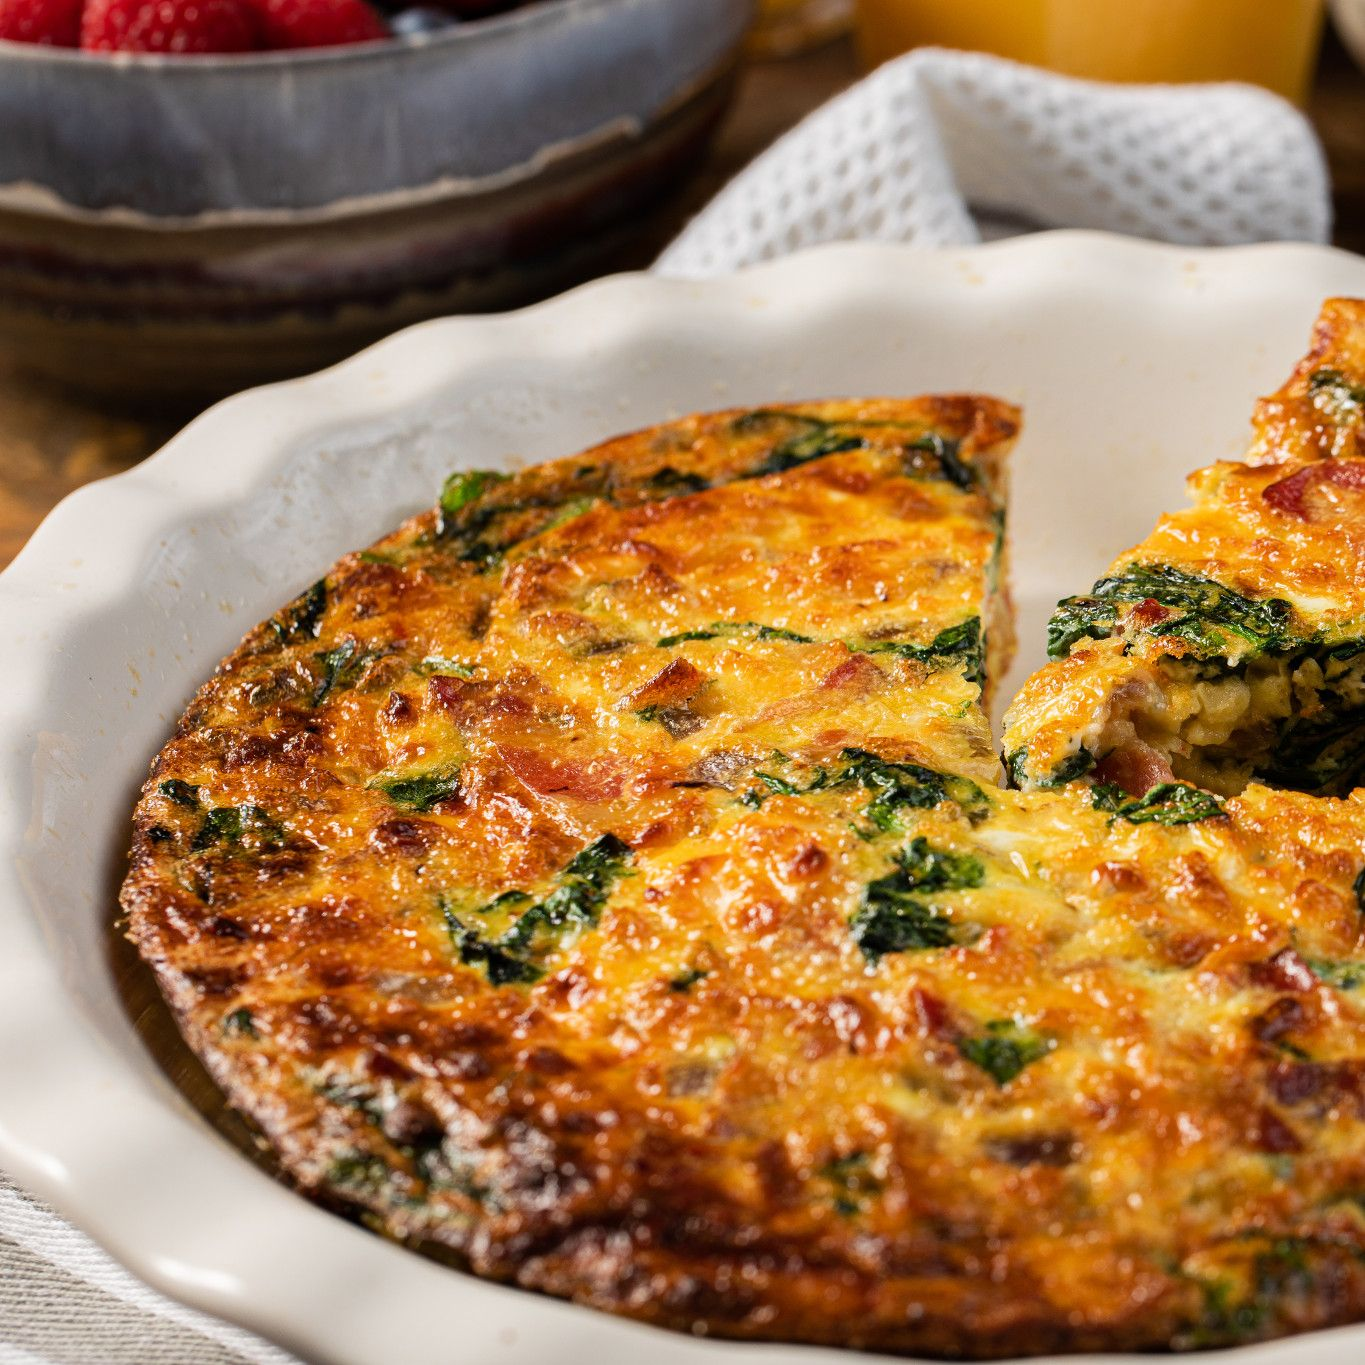 bacon_&_spinach_crustless_quiche_6238.jpg